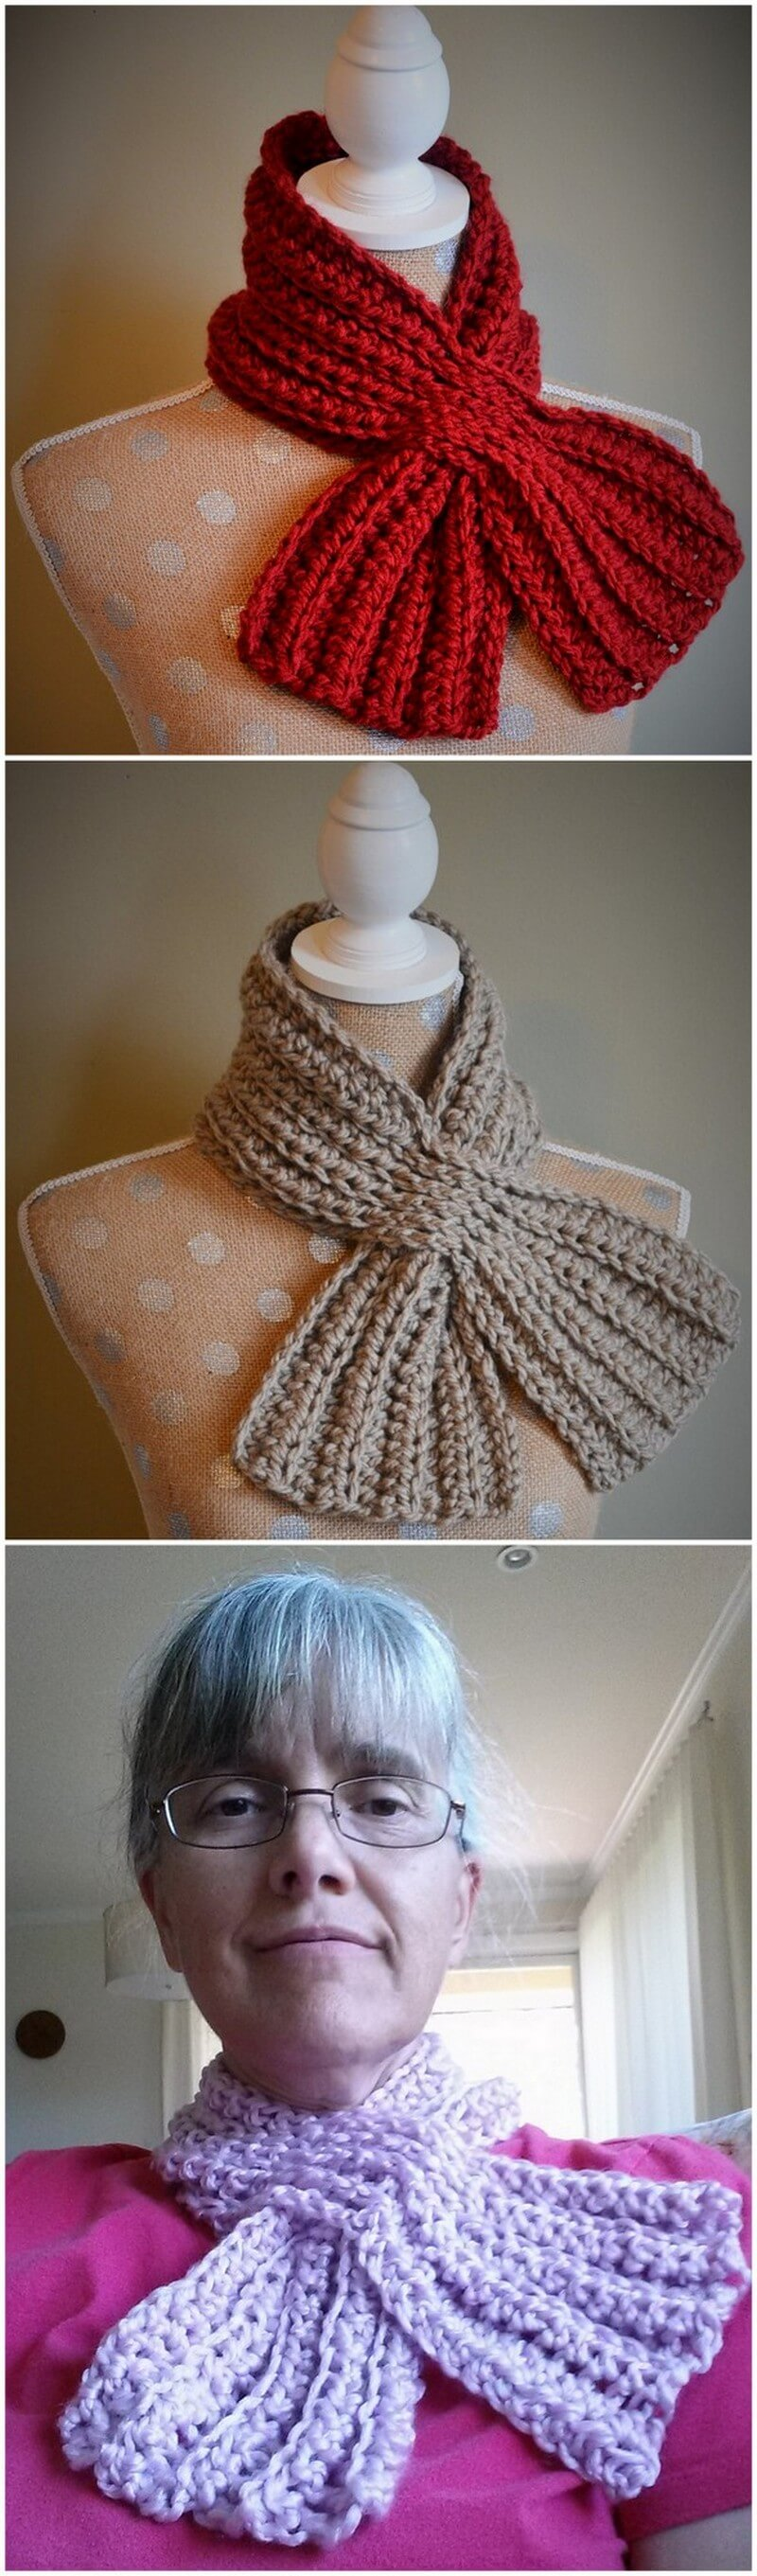 Easy Crochet Scarf Pattern (50)